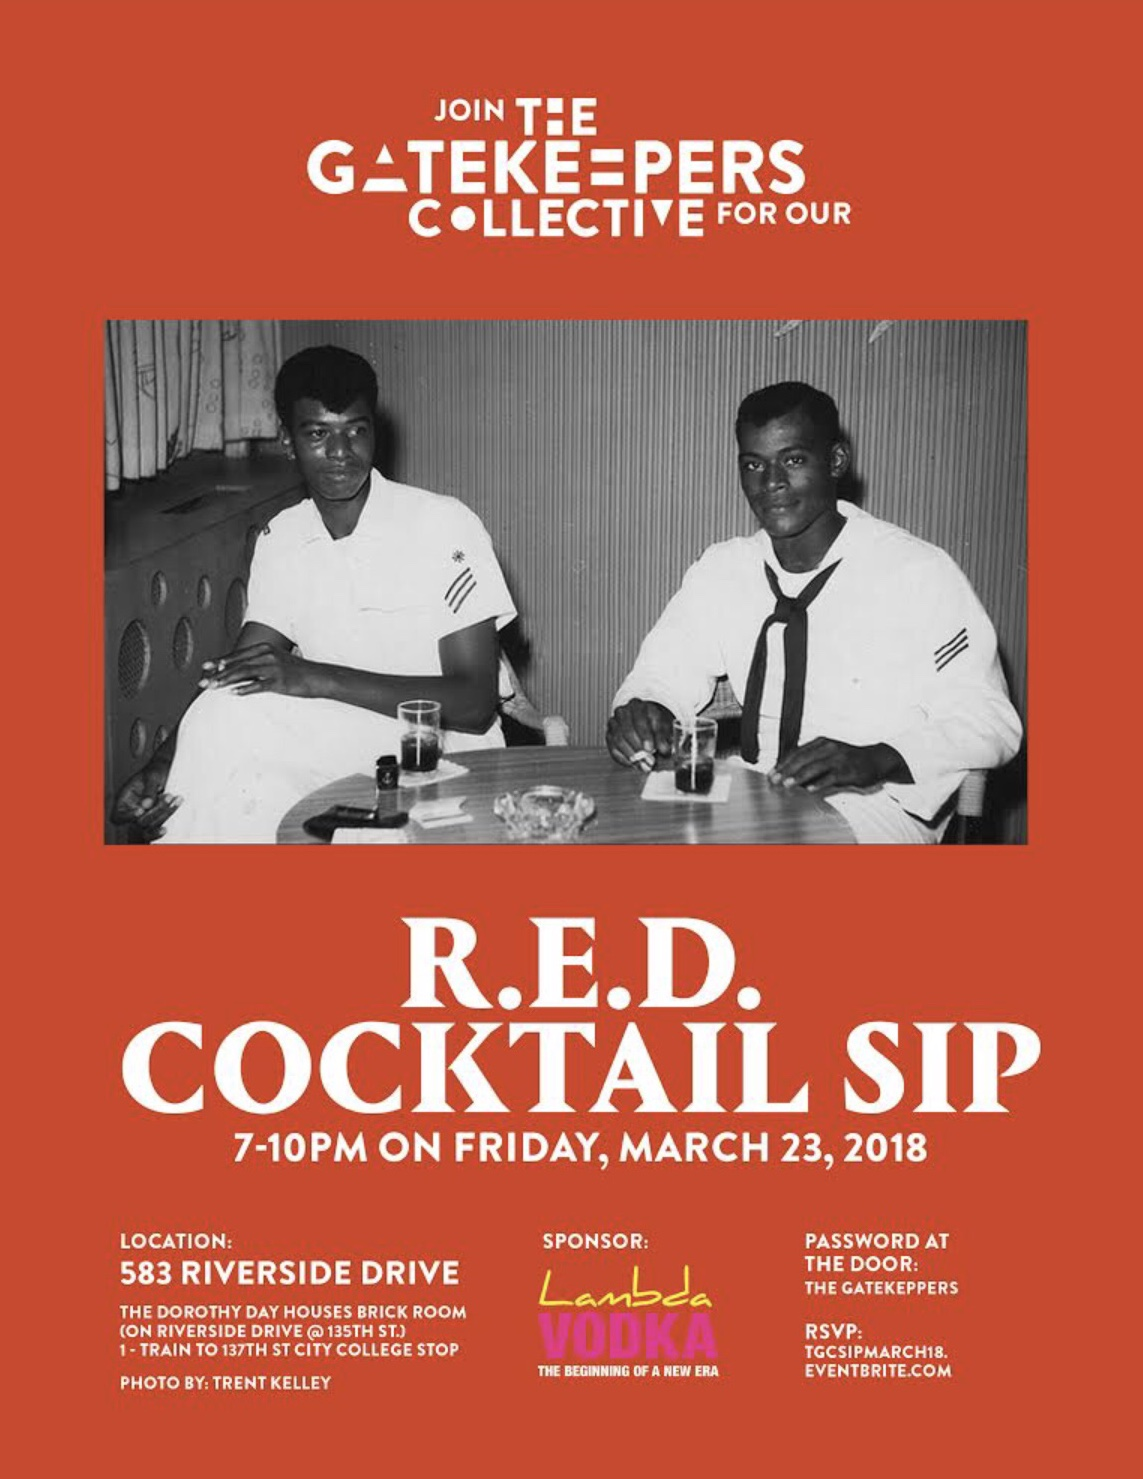 The Gatekeepers collective cocktail Sip -